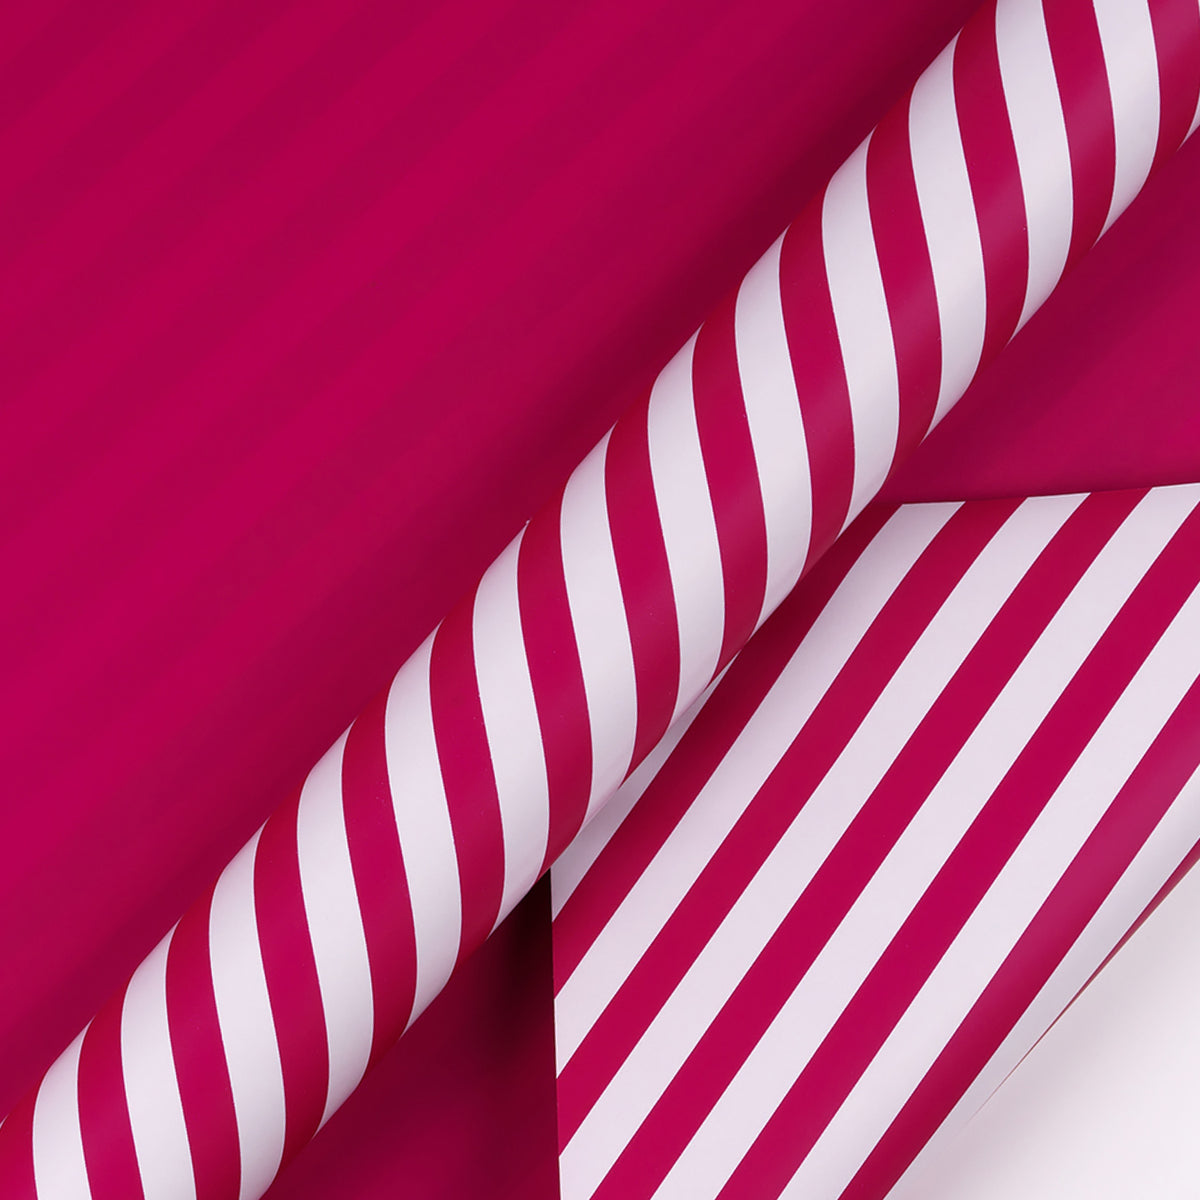 Wrapaholic-Medium-Violet Red-and-Stripes -Design-Reversible-Gift- Wrapping-Paper-2